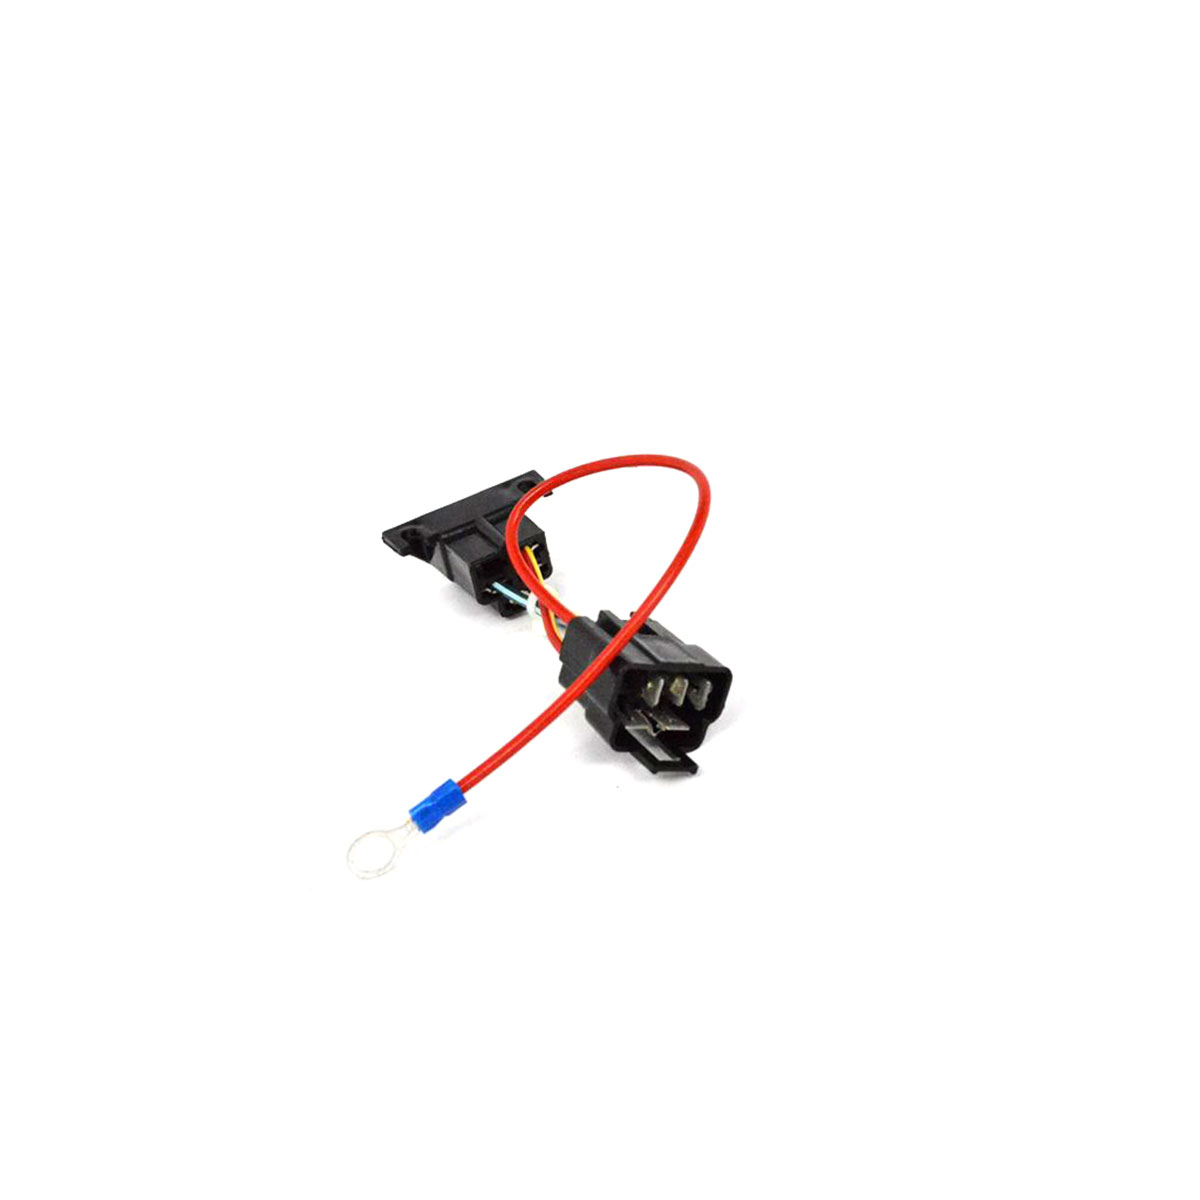 Scag Wiring Harness Adapter Kh 484078 Accessories